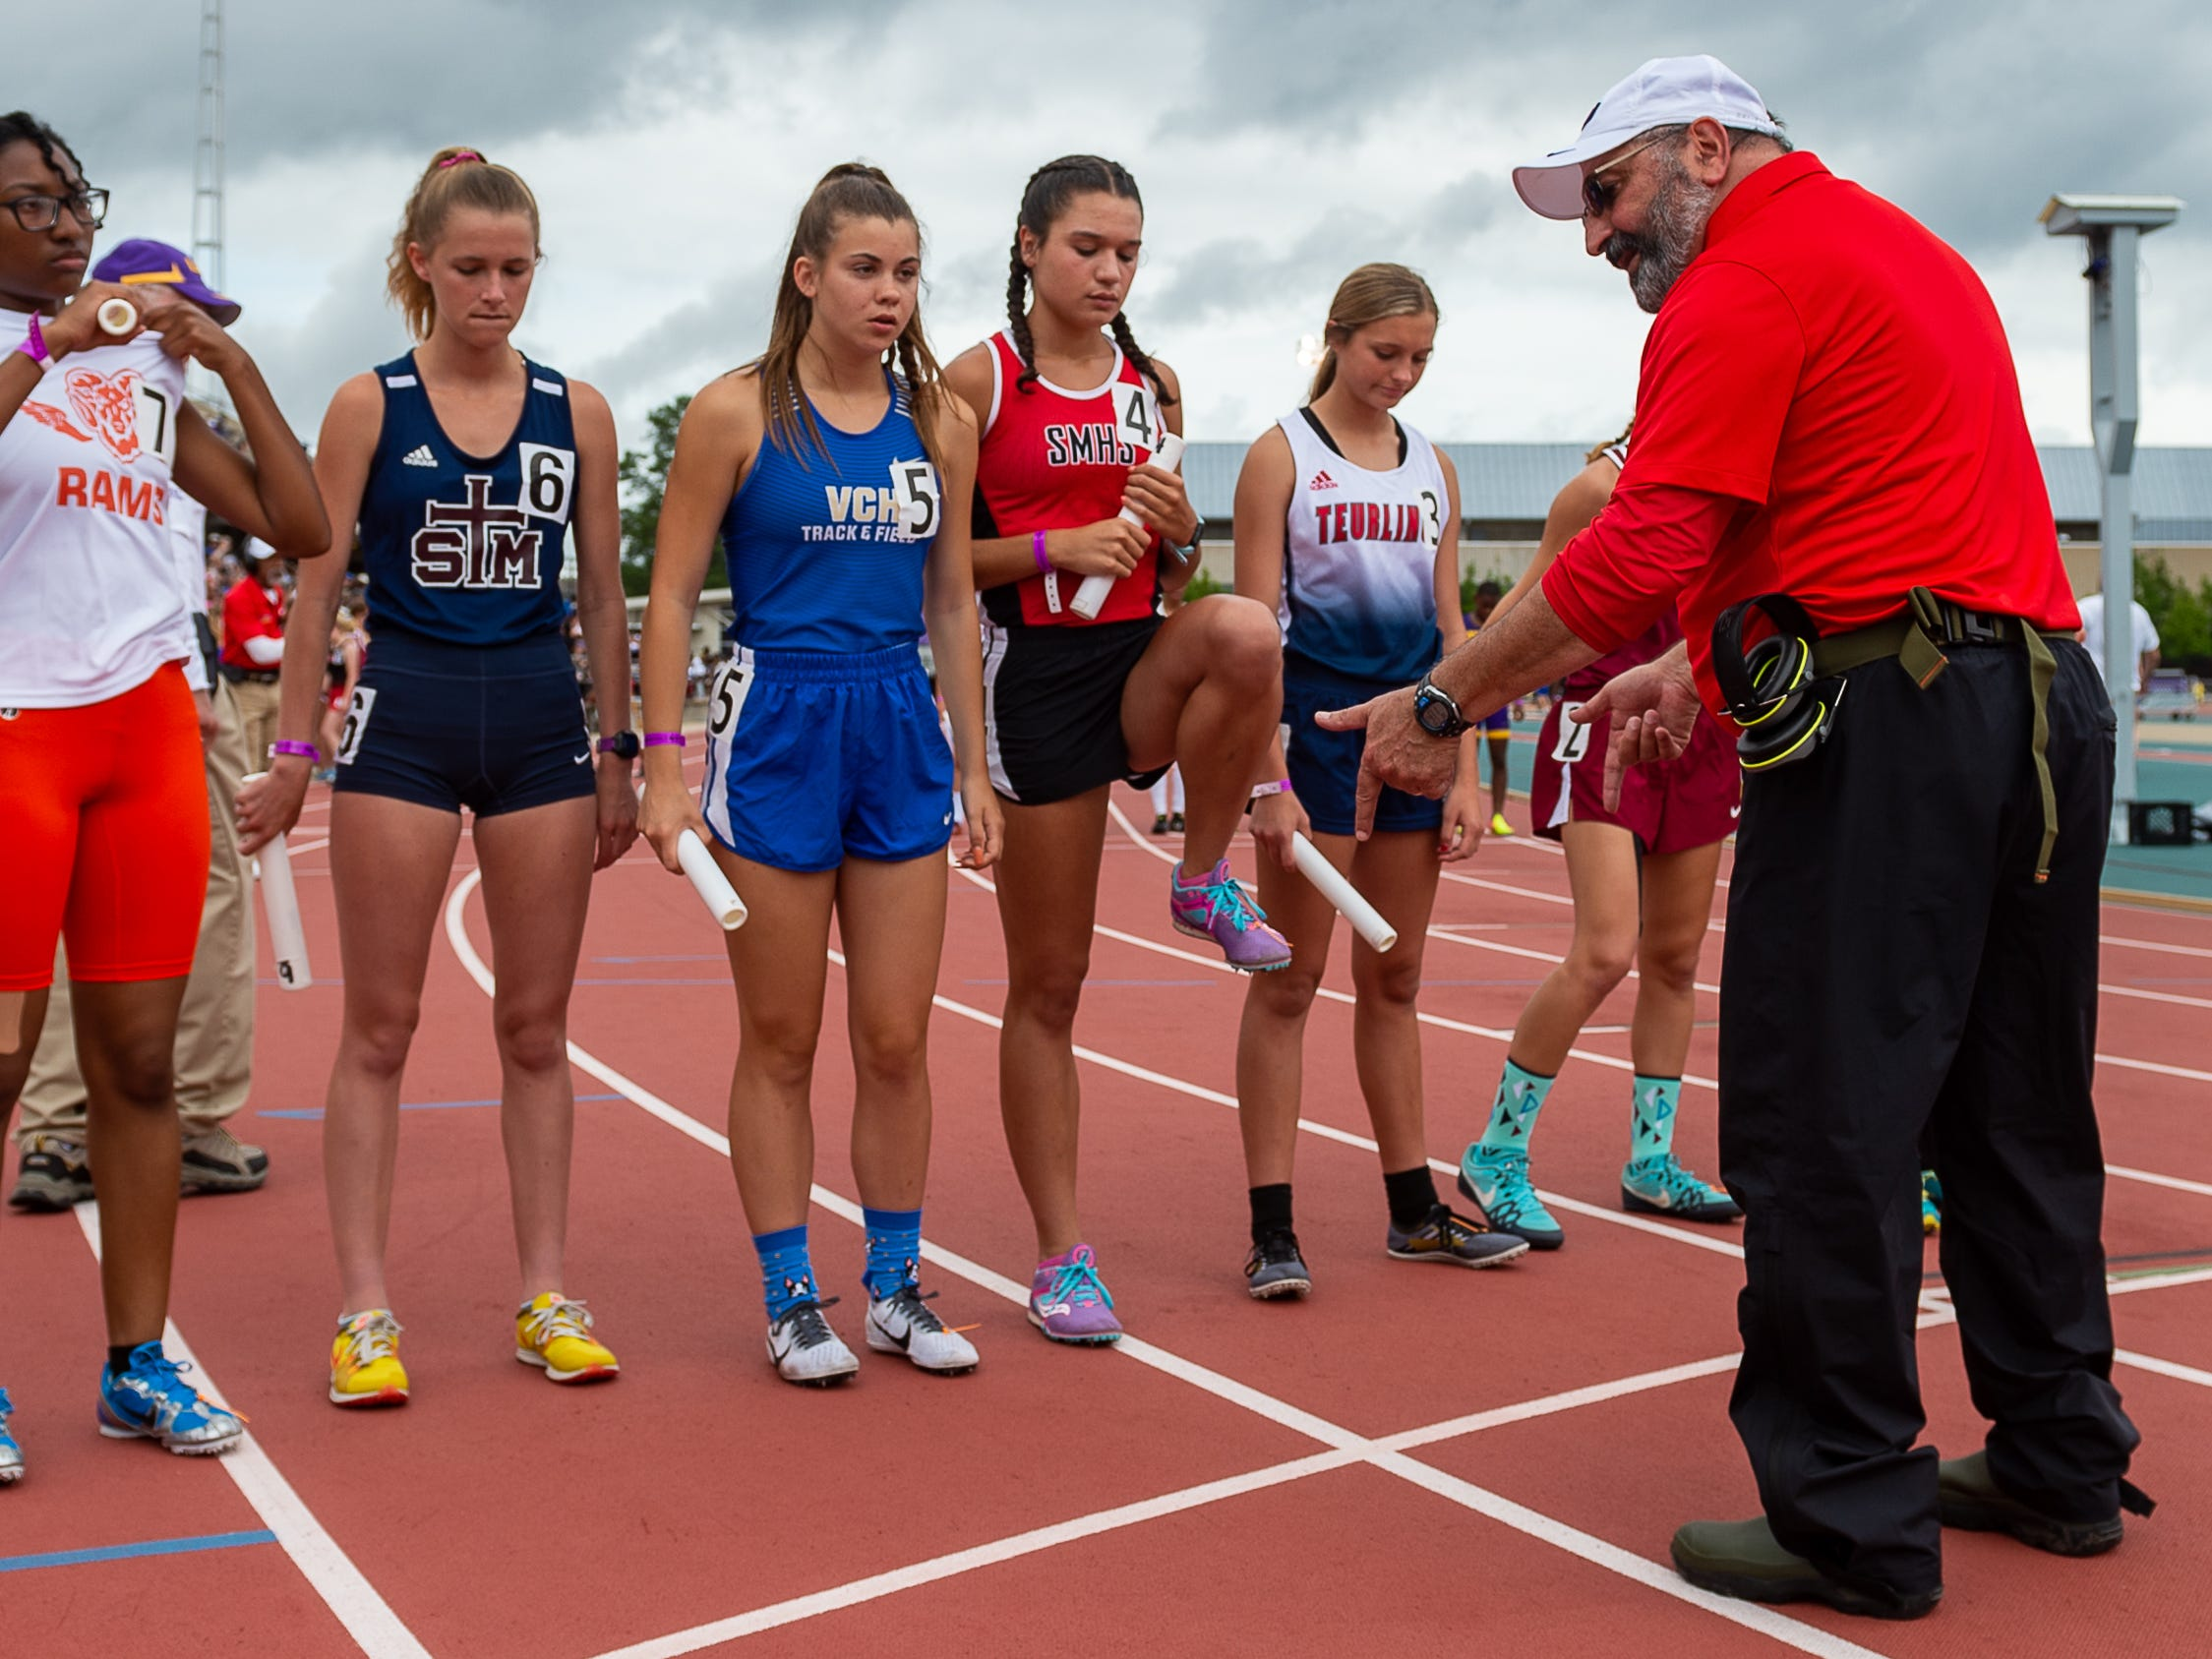 Race Official Doug Saloom gives instruction to runners at The LHSAA Sate Track Meet at Bernie Moore Track in Baton Rouge, LA. Saturday, May 4, 2019.